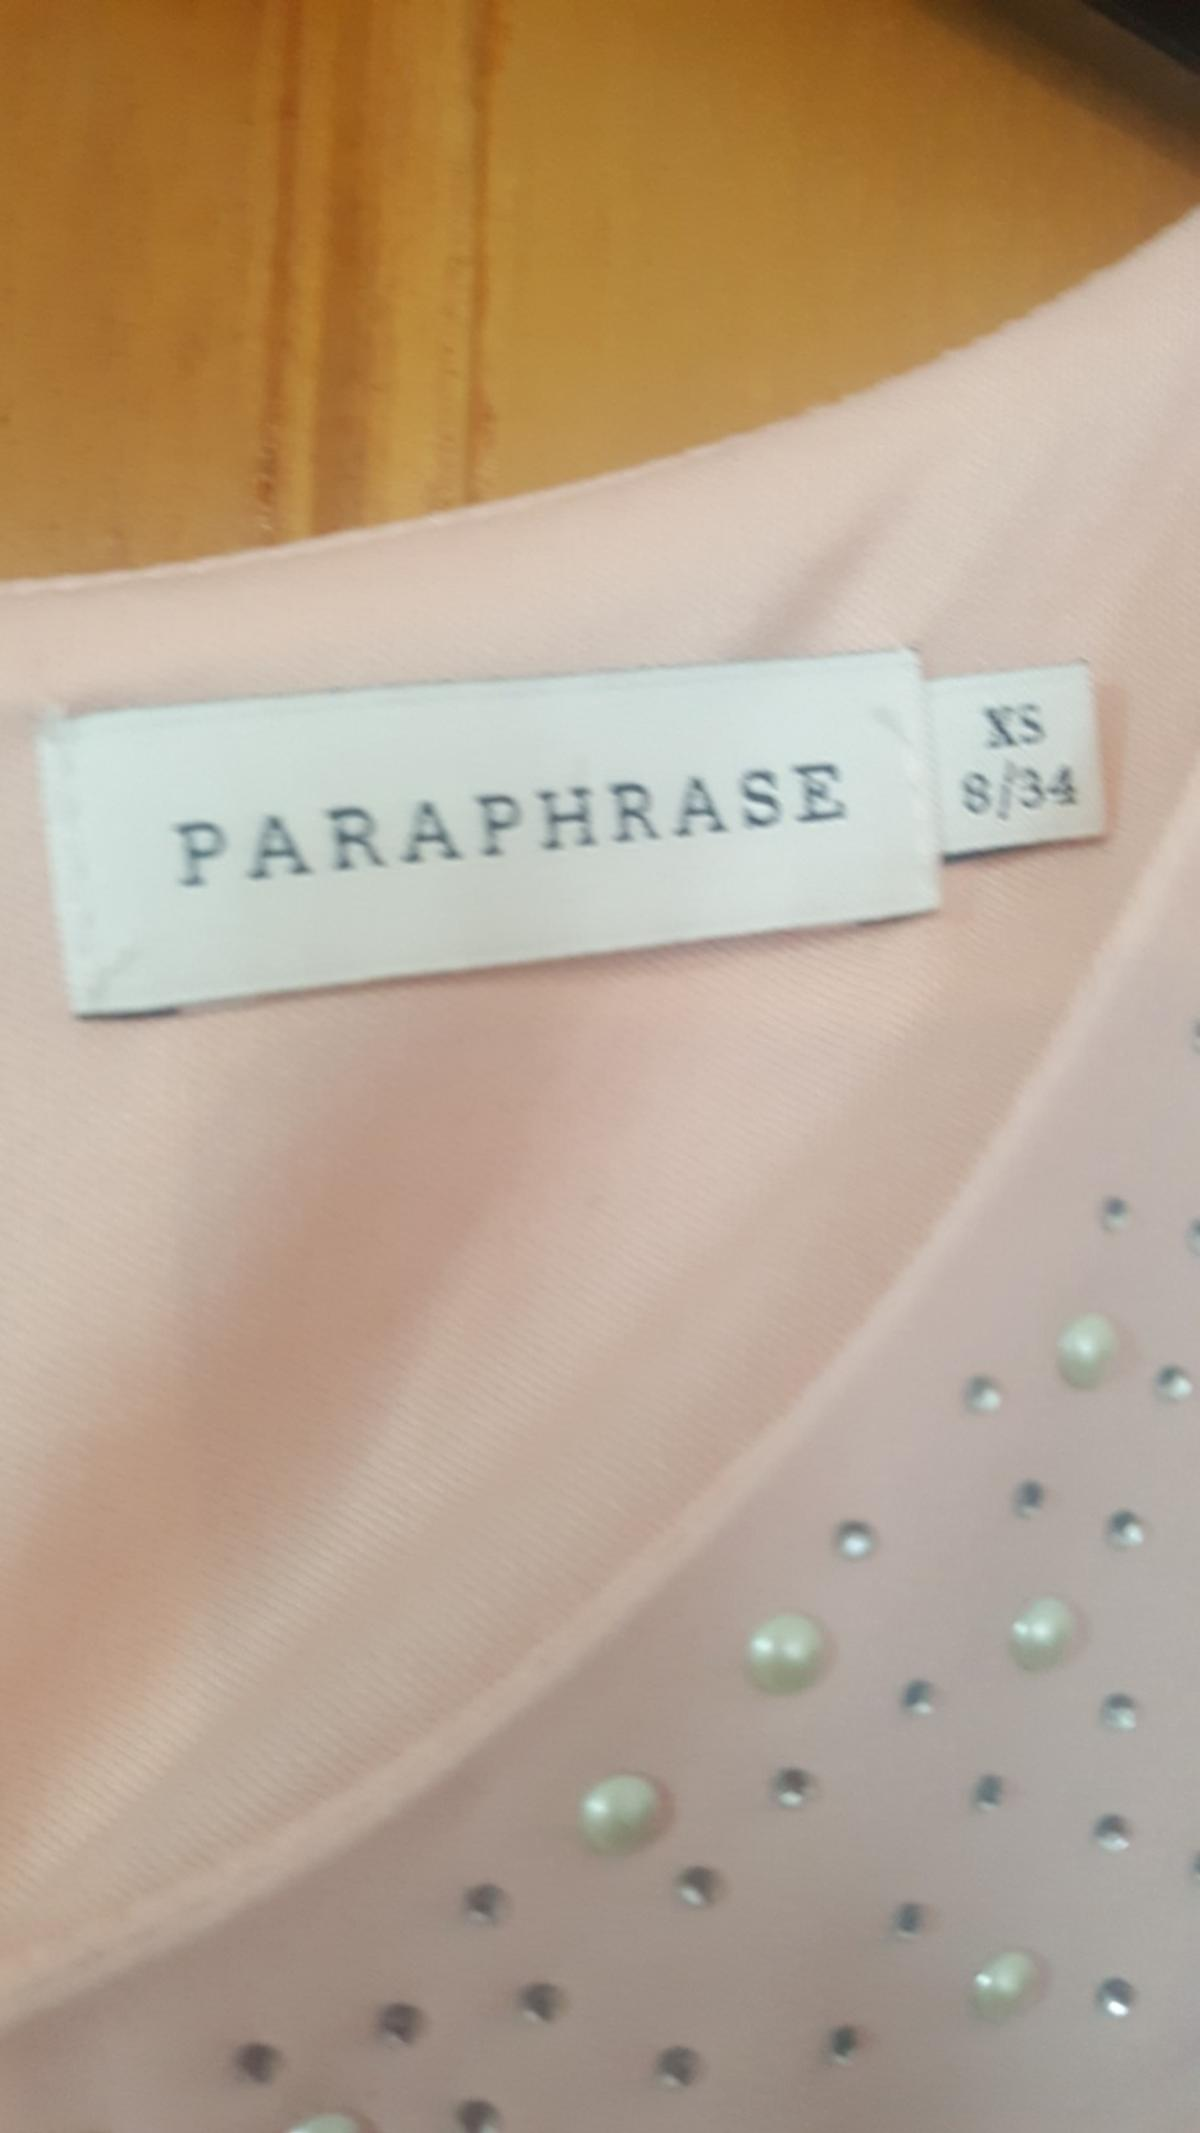 7a412399e39 Light Pink tunic/dress in NG5 Nottingham for £5.00 for sale - Shpock